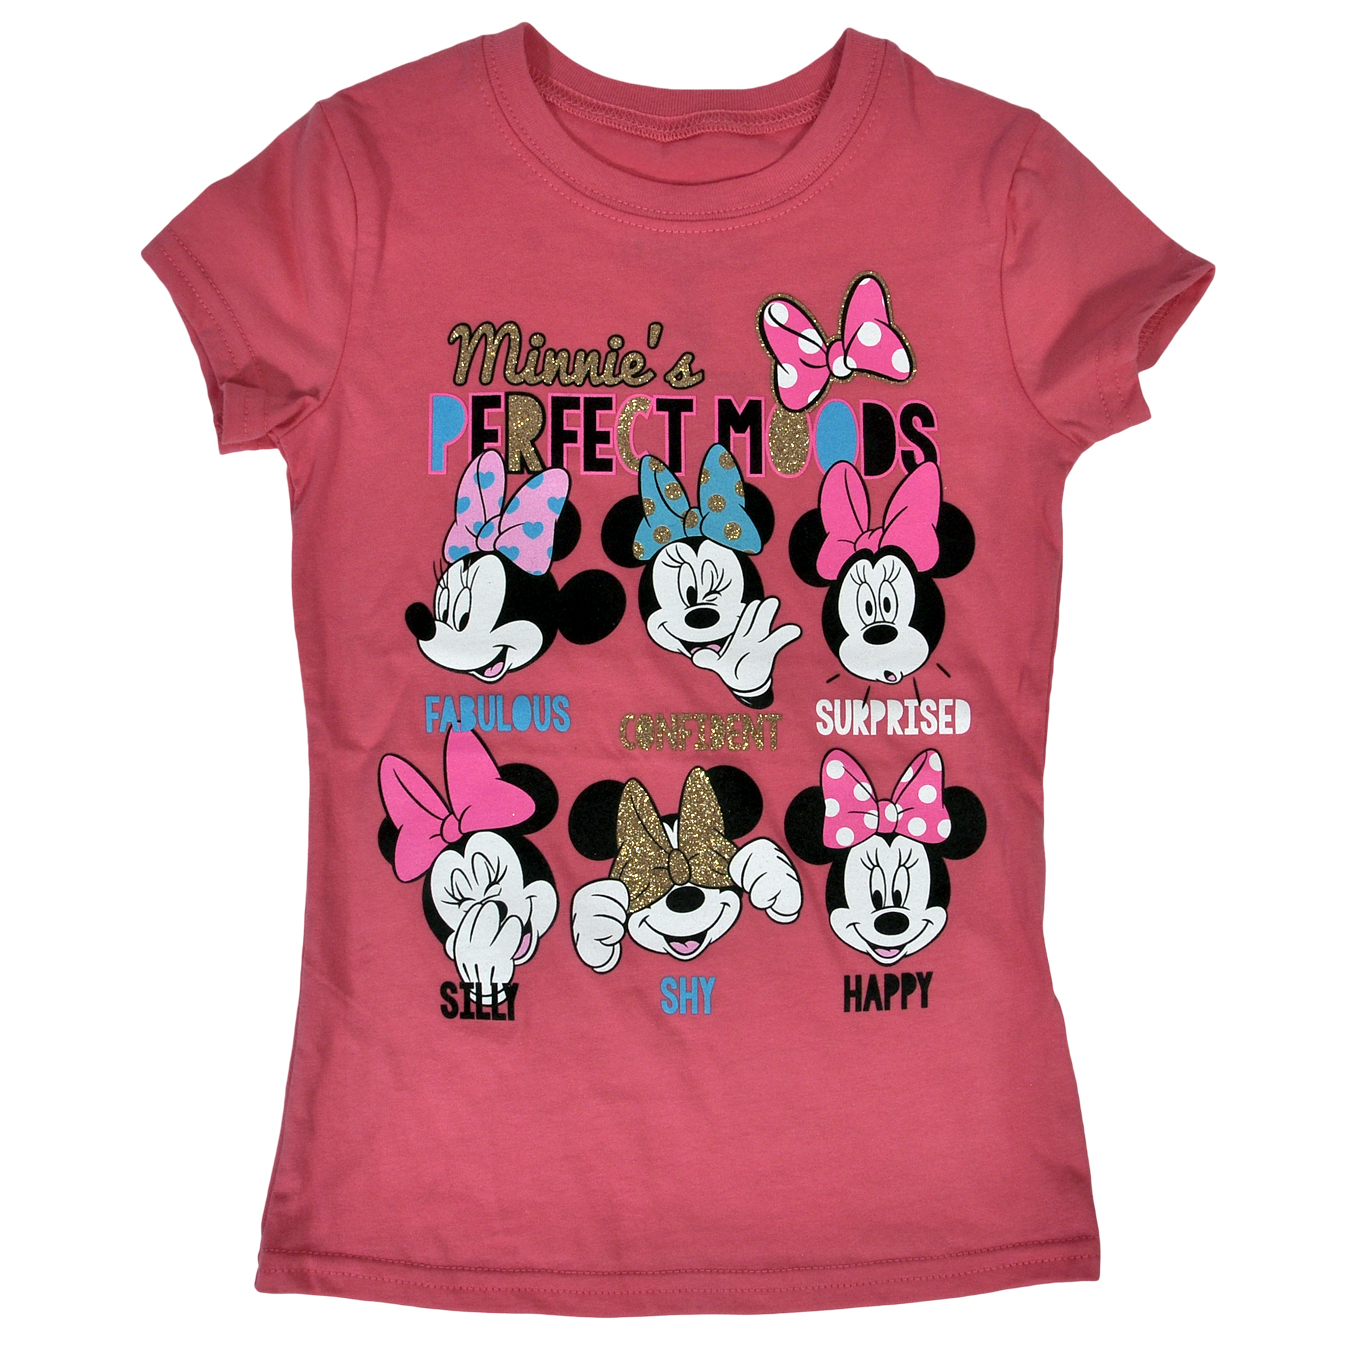 Minnie Mouse Perfect Moods Girls T-Shirt Pink